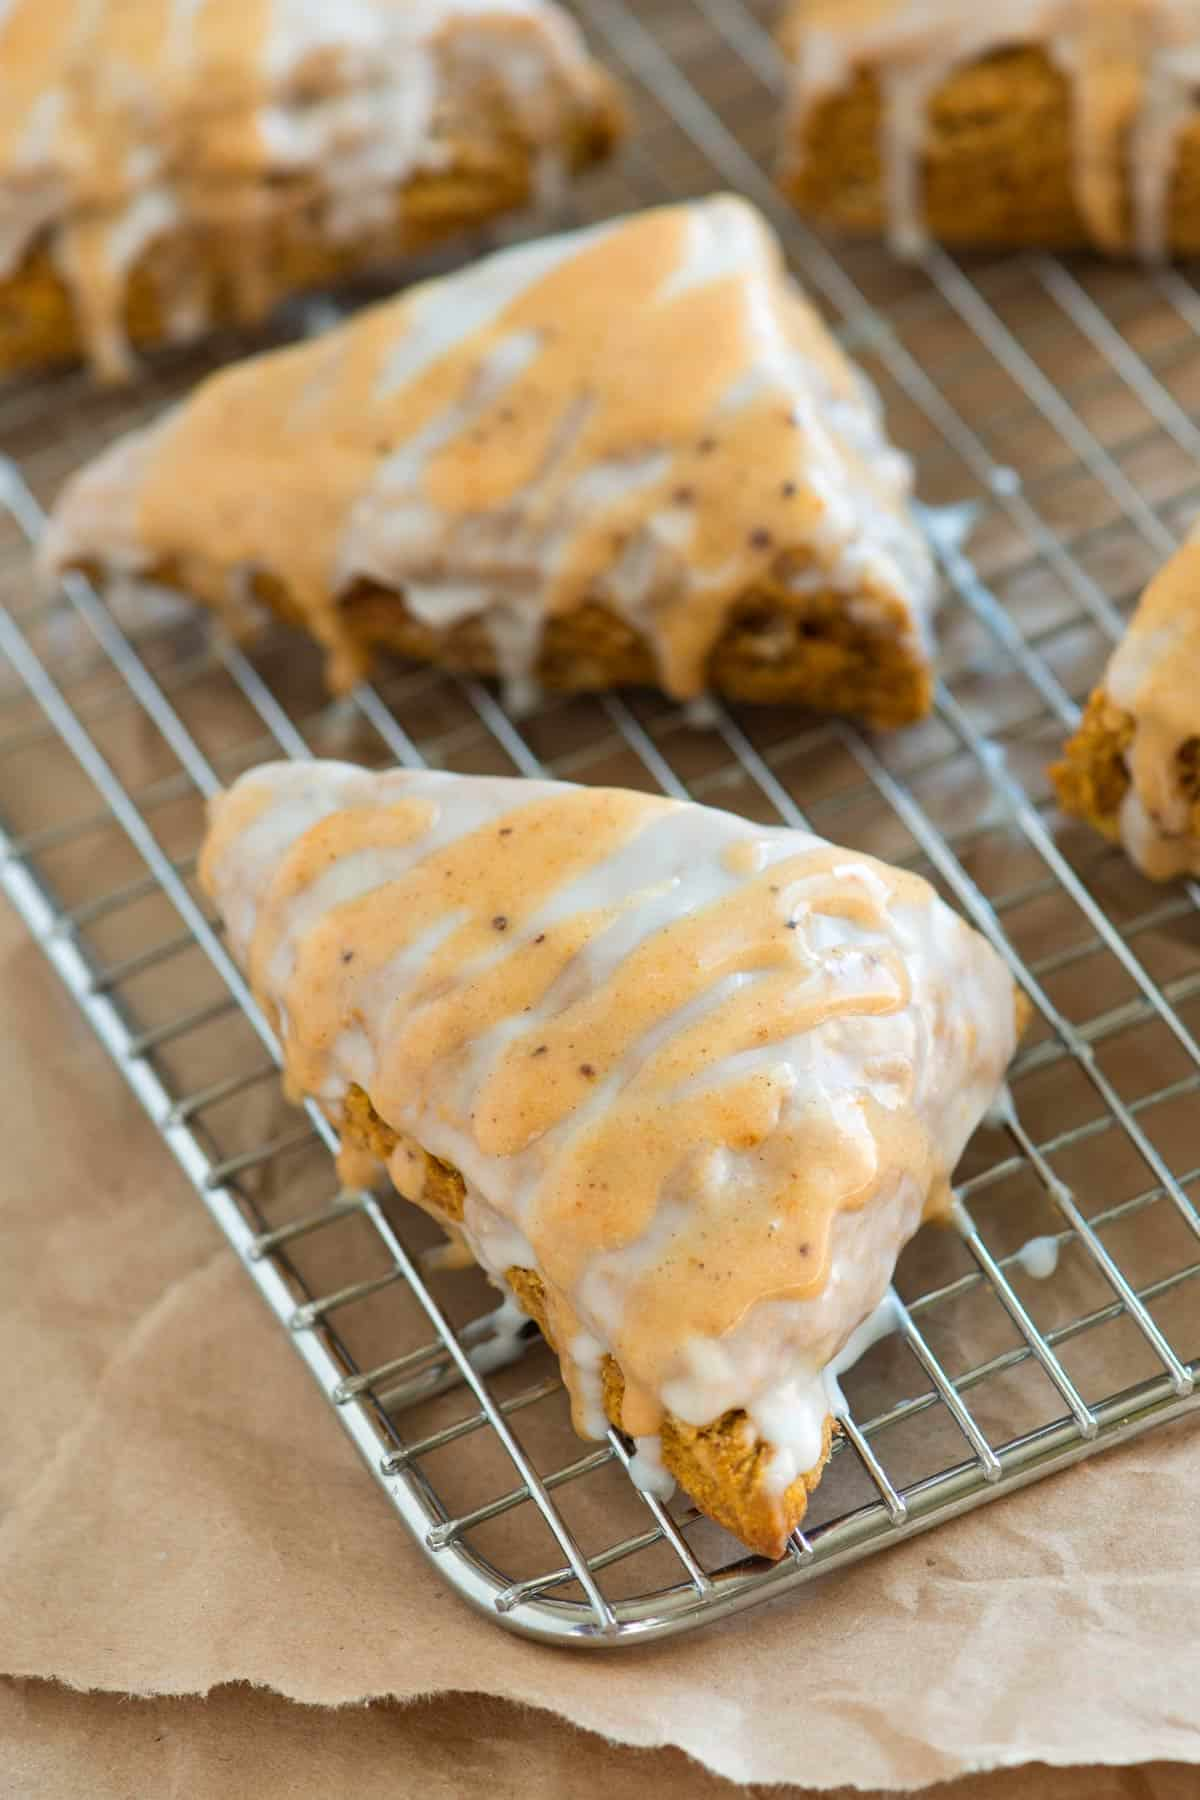 How to make our spiced pumpkin scones recipe inspired by Starbucks.